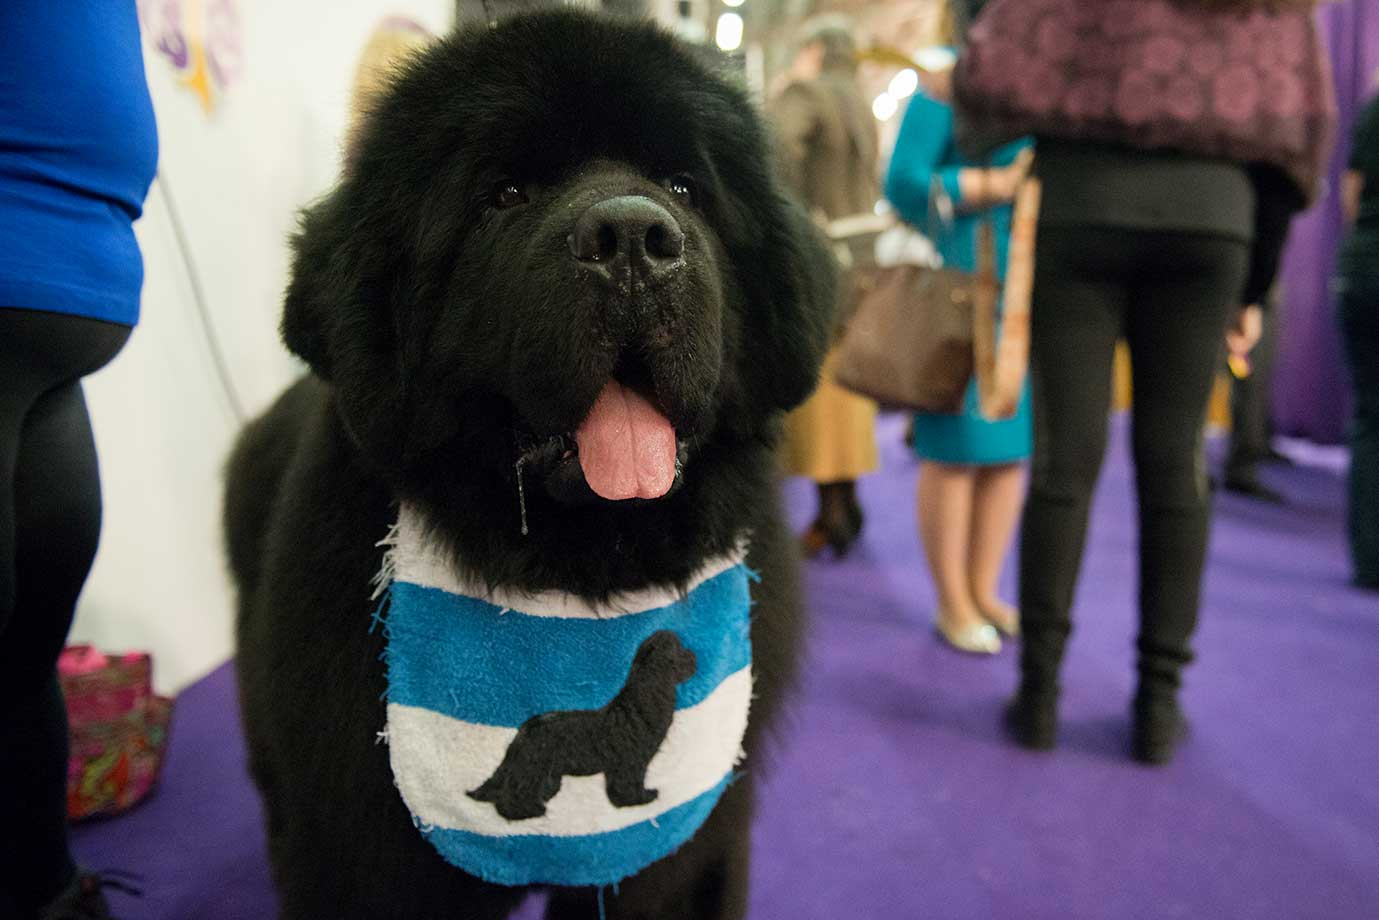 A Mastiff wears its bib before competition on the second day of the annual Westminster Kennel Club dog show.